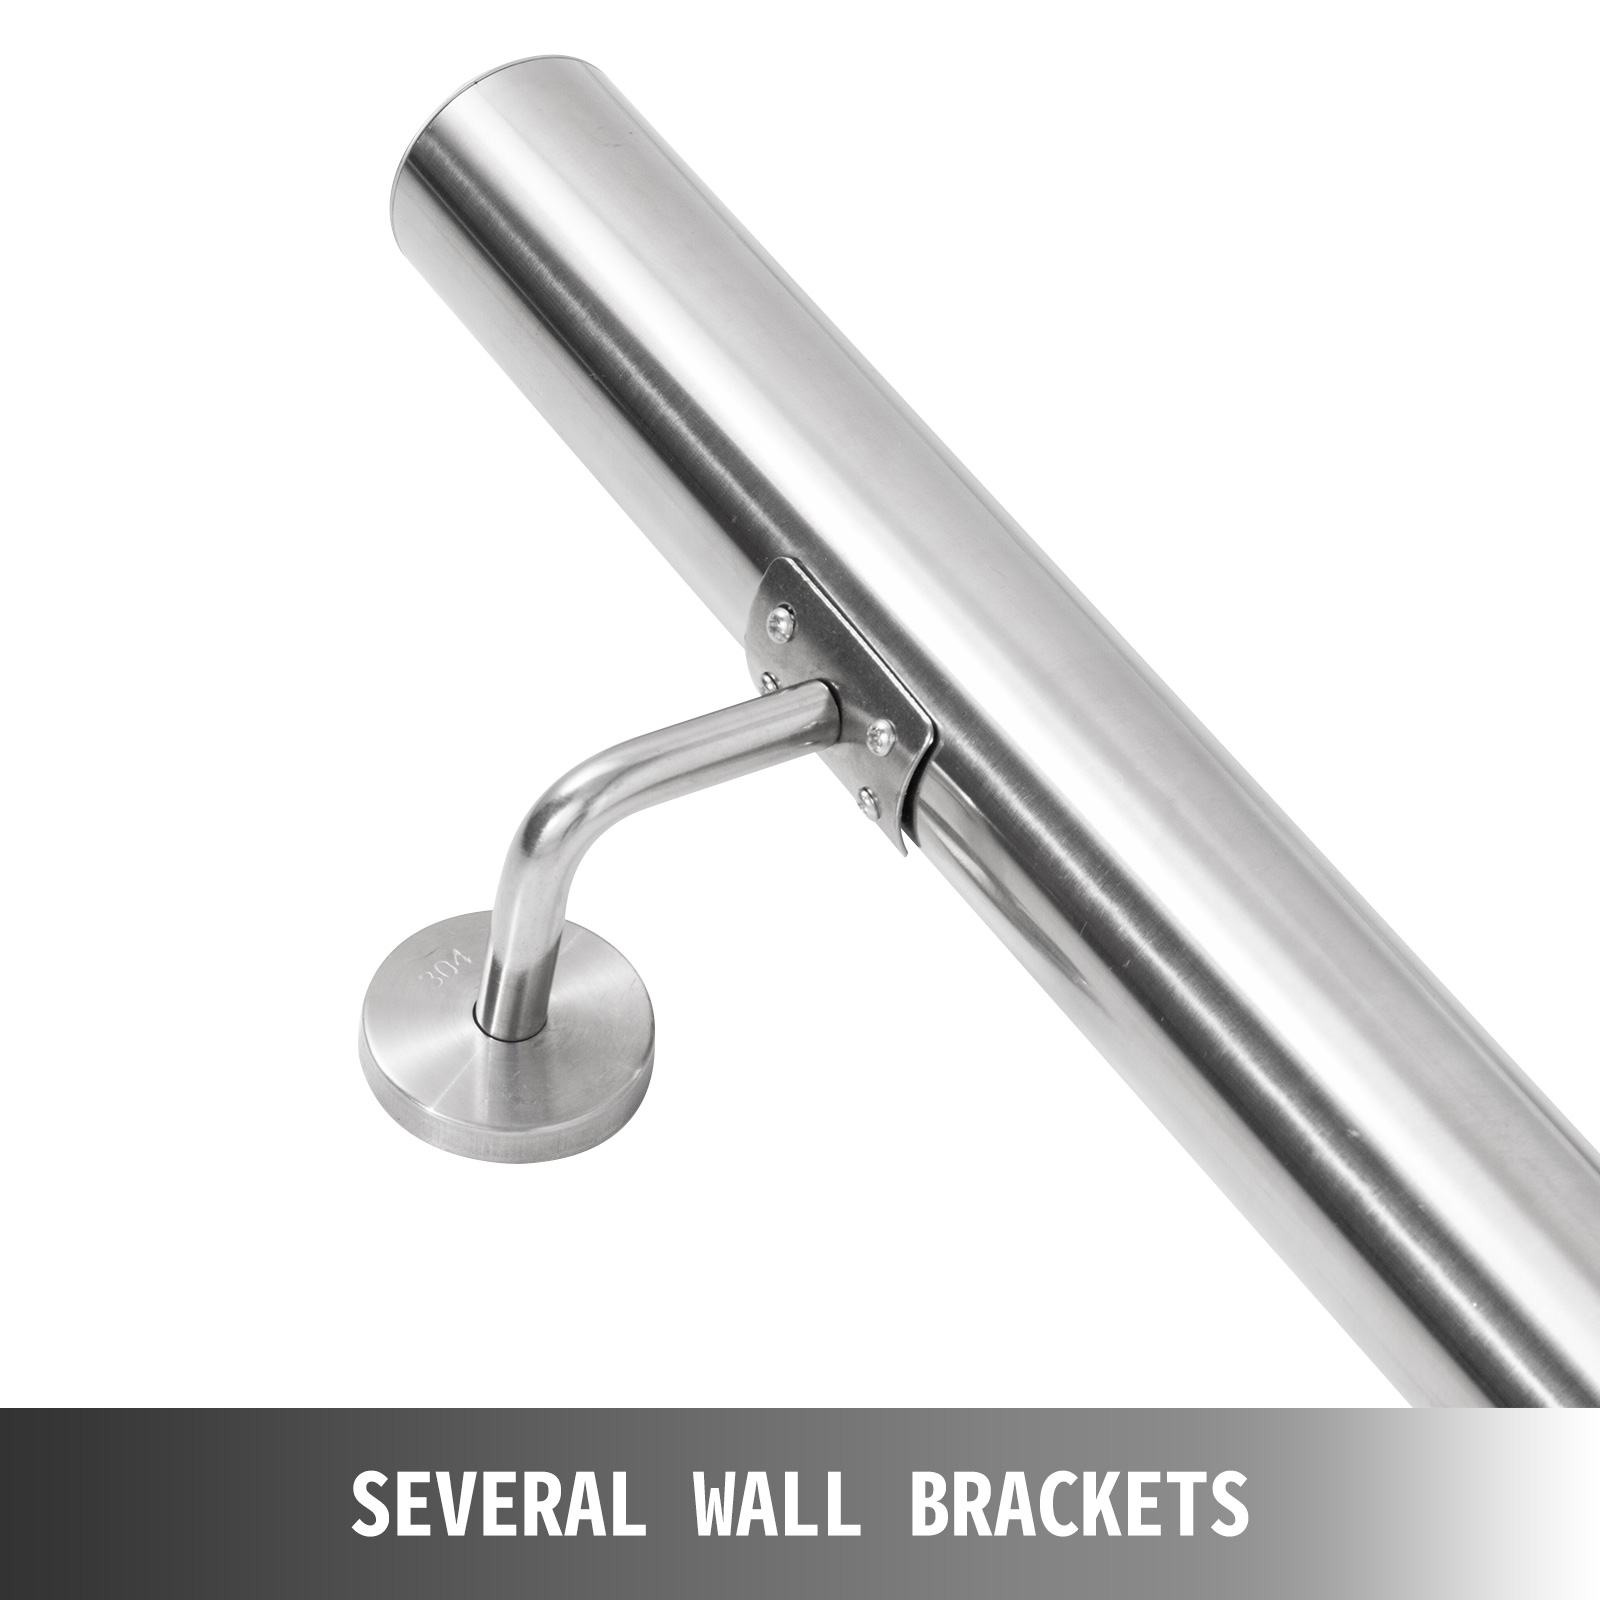 Stair-Handrail-Stair-Rail-3-10ft-Stainless-Steel-Handrail-for-Stairs-200lbs-Load thumbnail 51